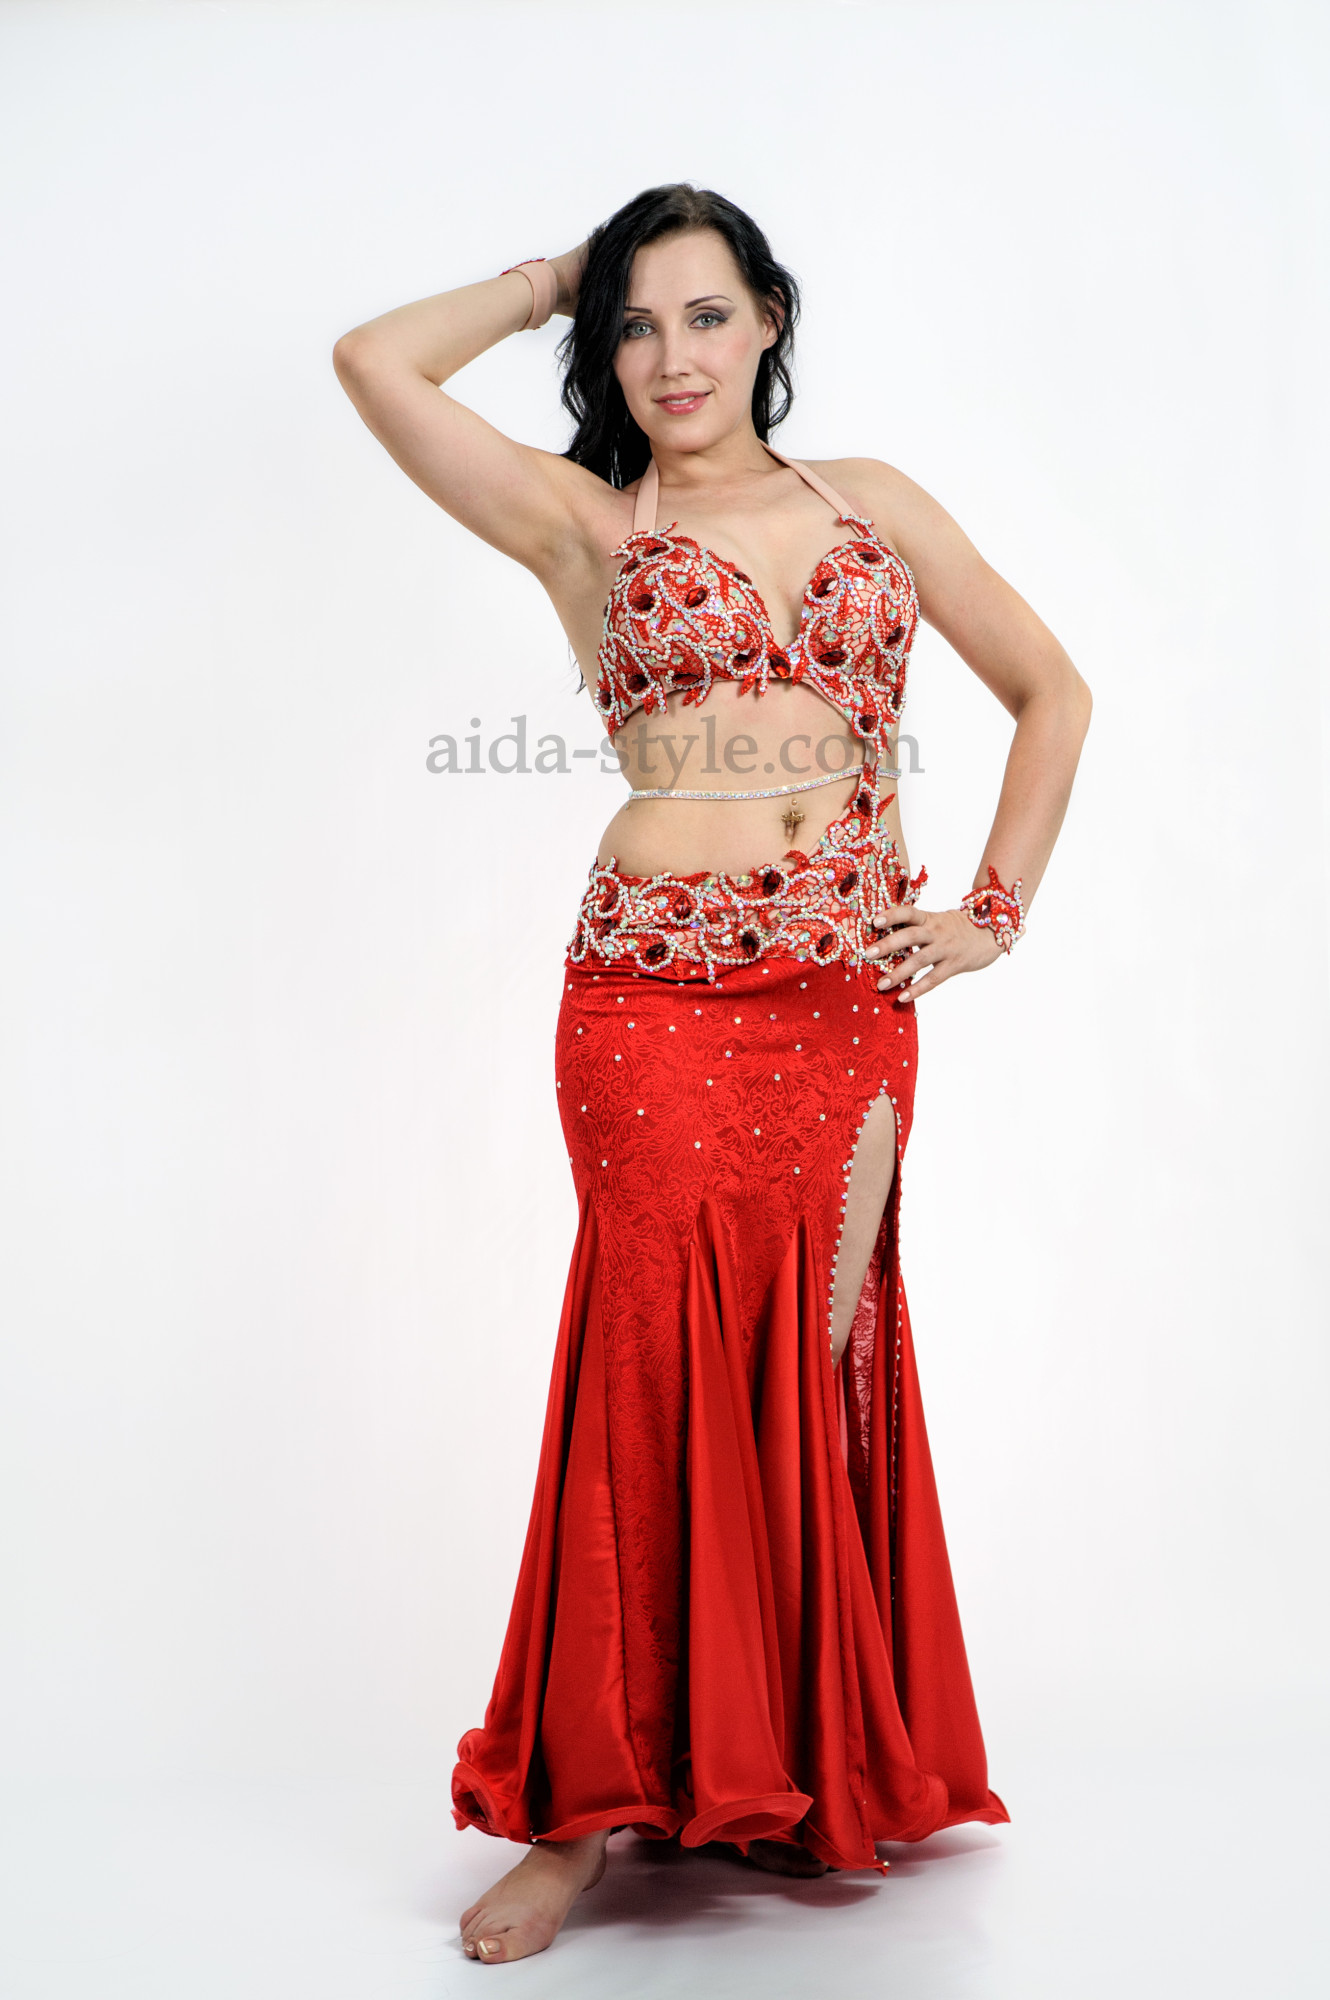 Red professional belly dance dress decorated with stones. The skirt has a cut on the left side. Bra and skirt are connected with a decoration